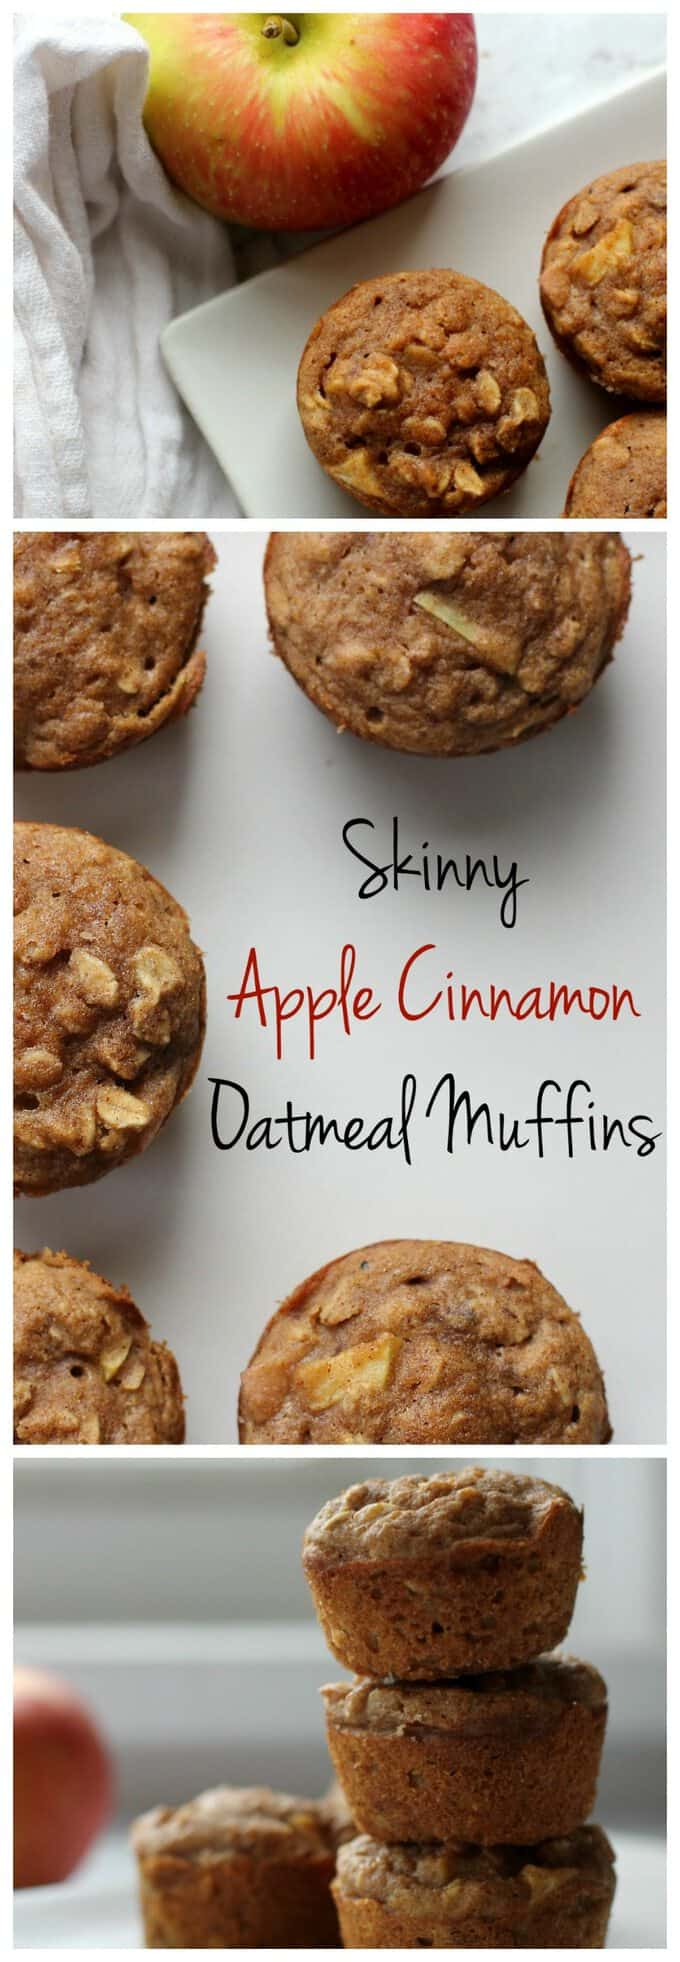 These skinny apple cinnamon muffins are an easy healthy breakfast or snack!